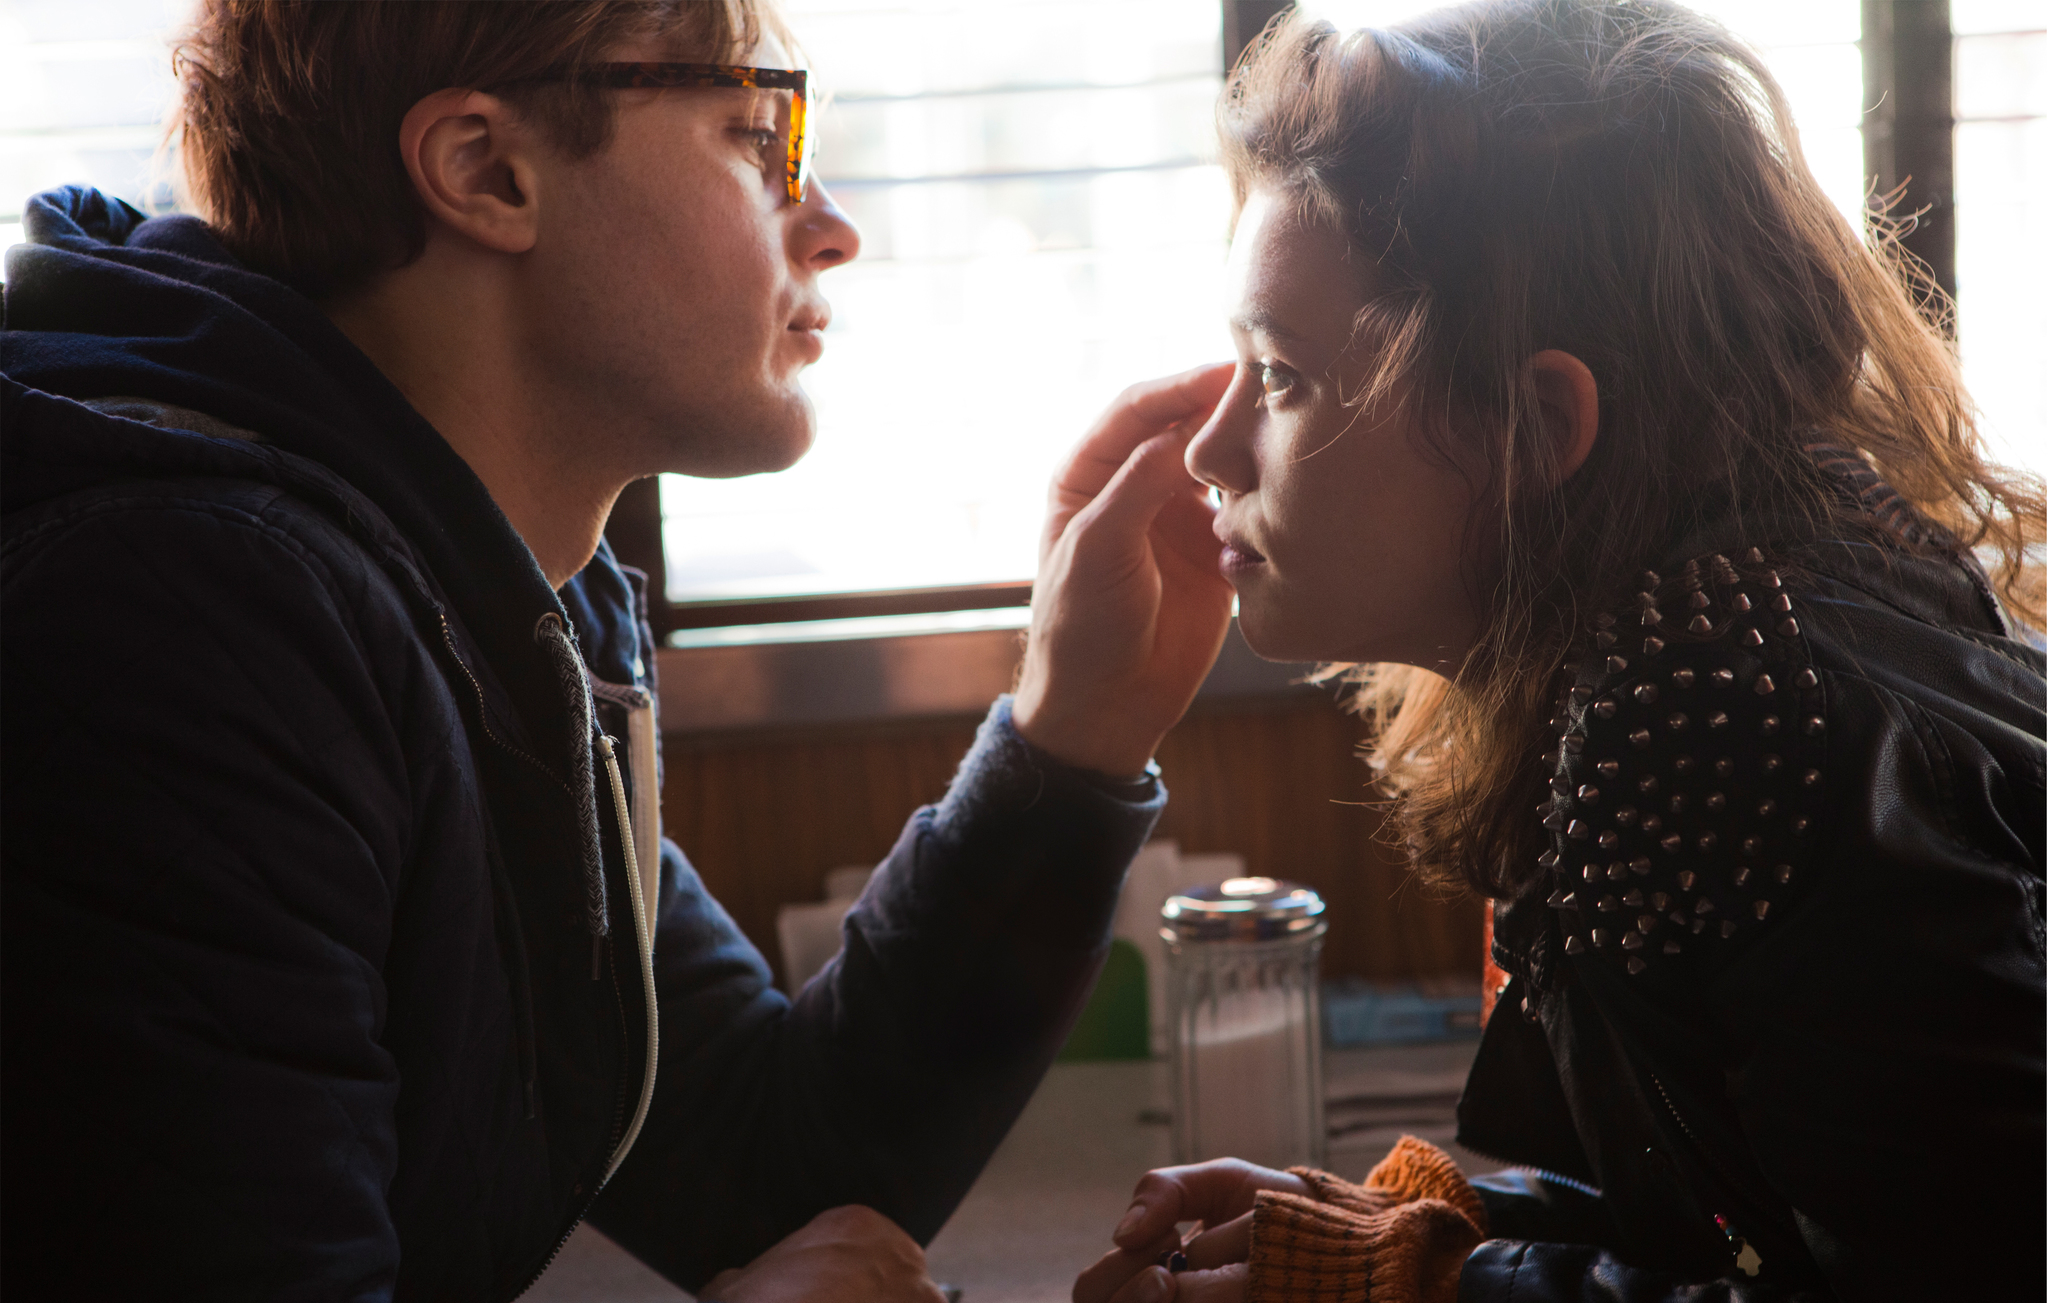 Michael-Pitt-and-Astrid-Bergès-Frisbey-in-I-Origins